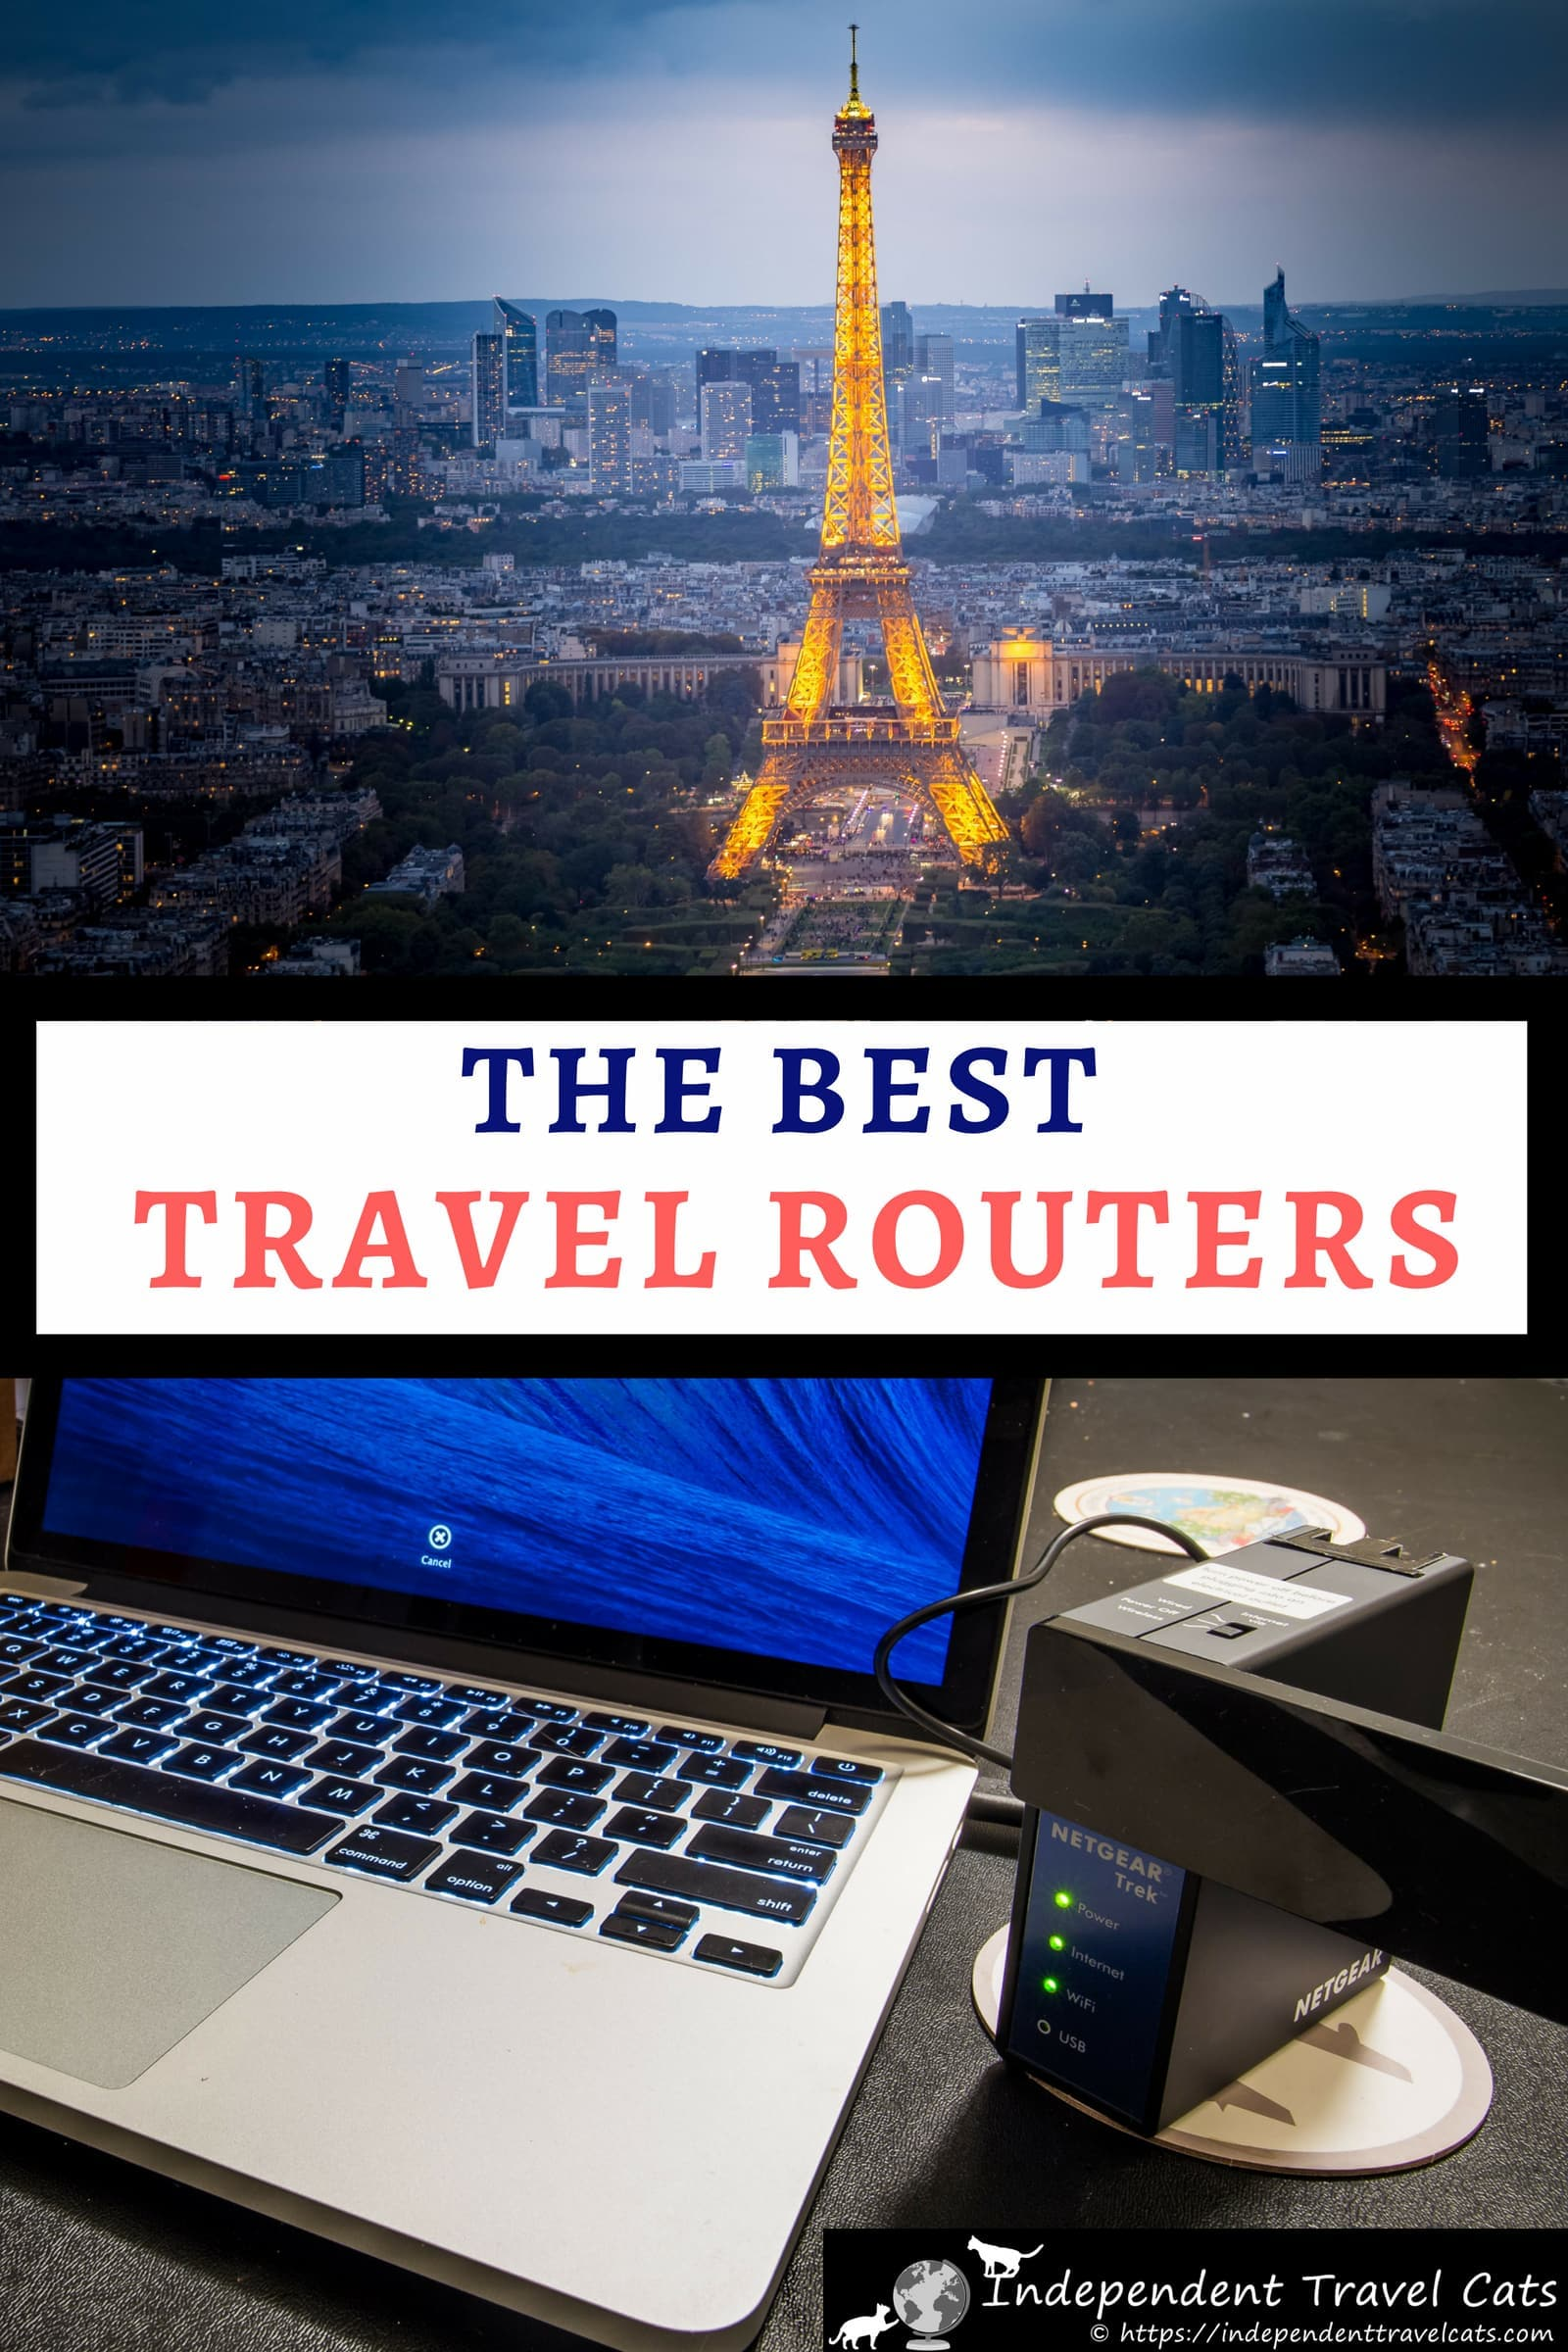 A Travel Router is a compact little device that solves common Internet issues while traveling and offers a number of features to the on-the-go traveler who wants to stay connected. We review the best travel routers to help you decide which is for you!